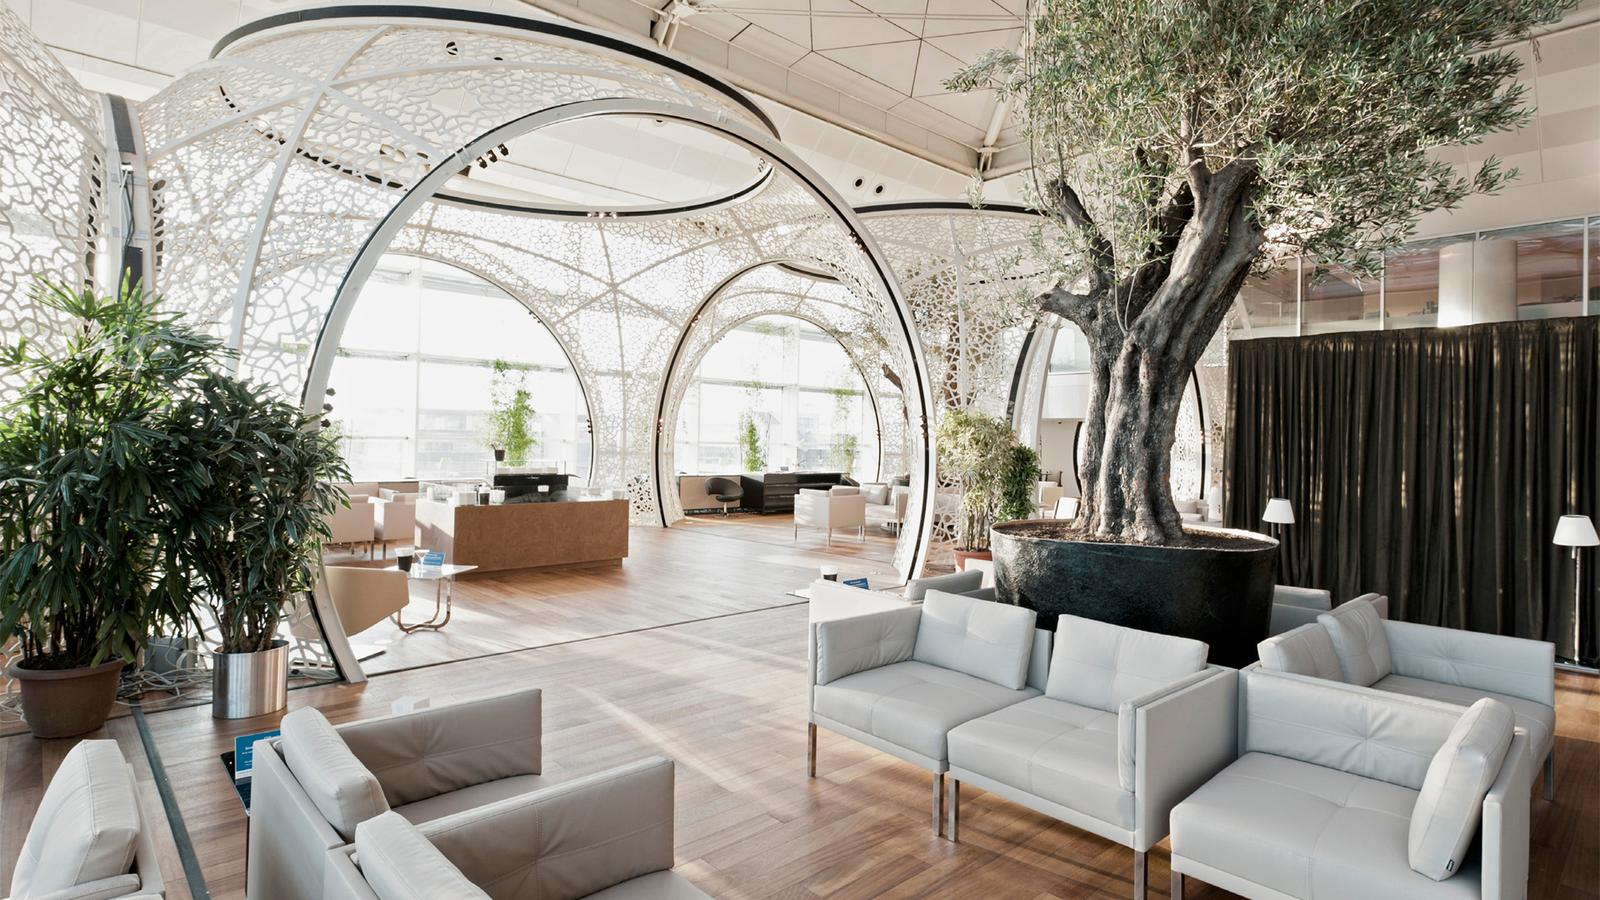 Turkish Airlines CIP Lounge